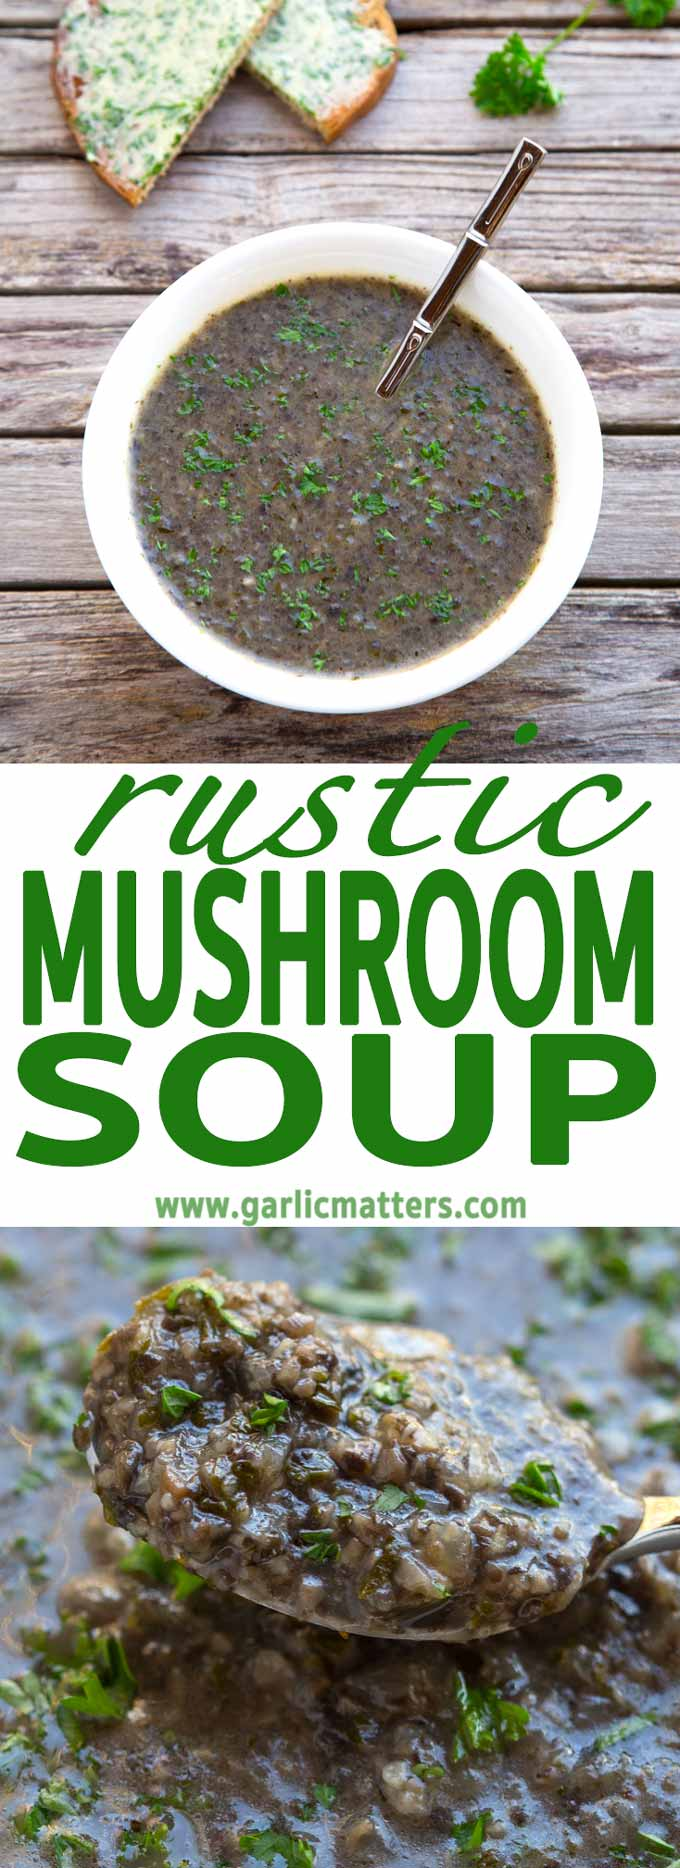 Easy, 30 min Rustic Mushroom Soup recipe is a delicious, fragrant mushroom vegetarian delight with beautiful, earthy and rich flavours.